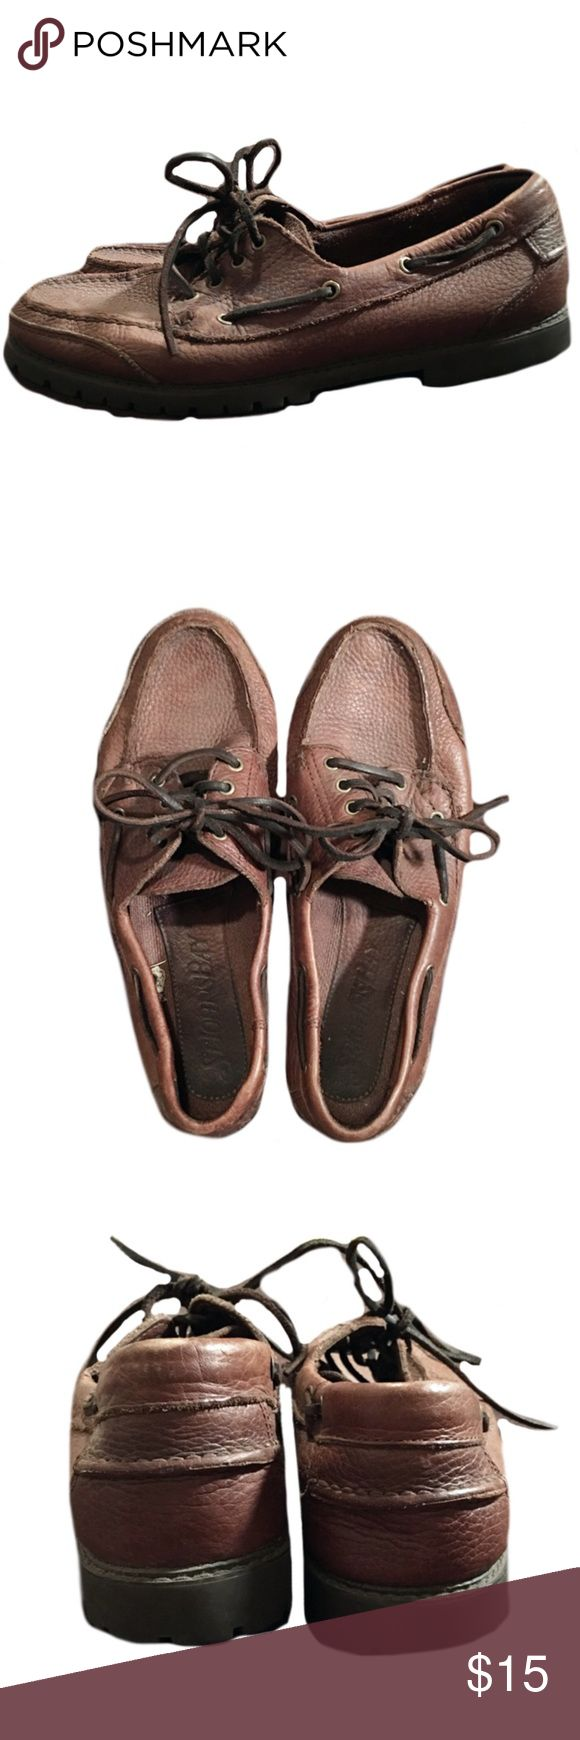 St. John's Bay Men's Brown Loafers ◾️Gently used men's St. John's Bay brown loafers. ◾️Size 11 ◾️Leather strings to tie shoes St. John's Bay Shoes Loafers & Slip-Ons